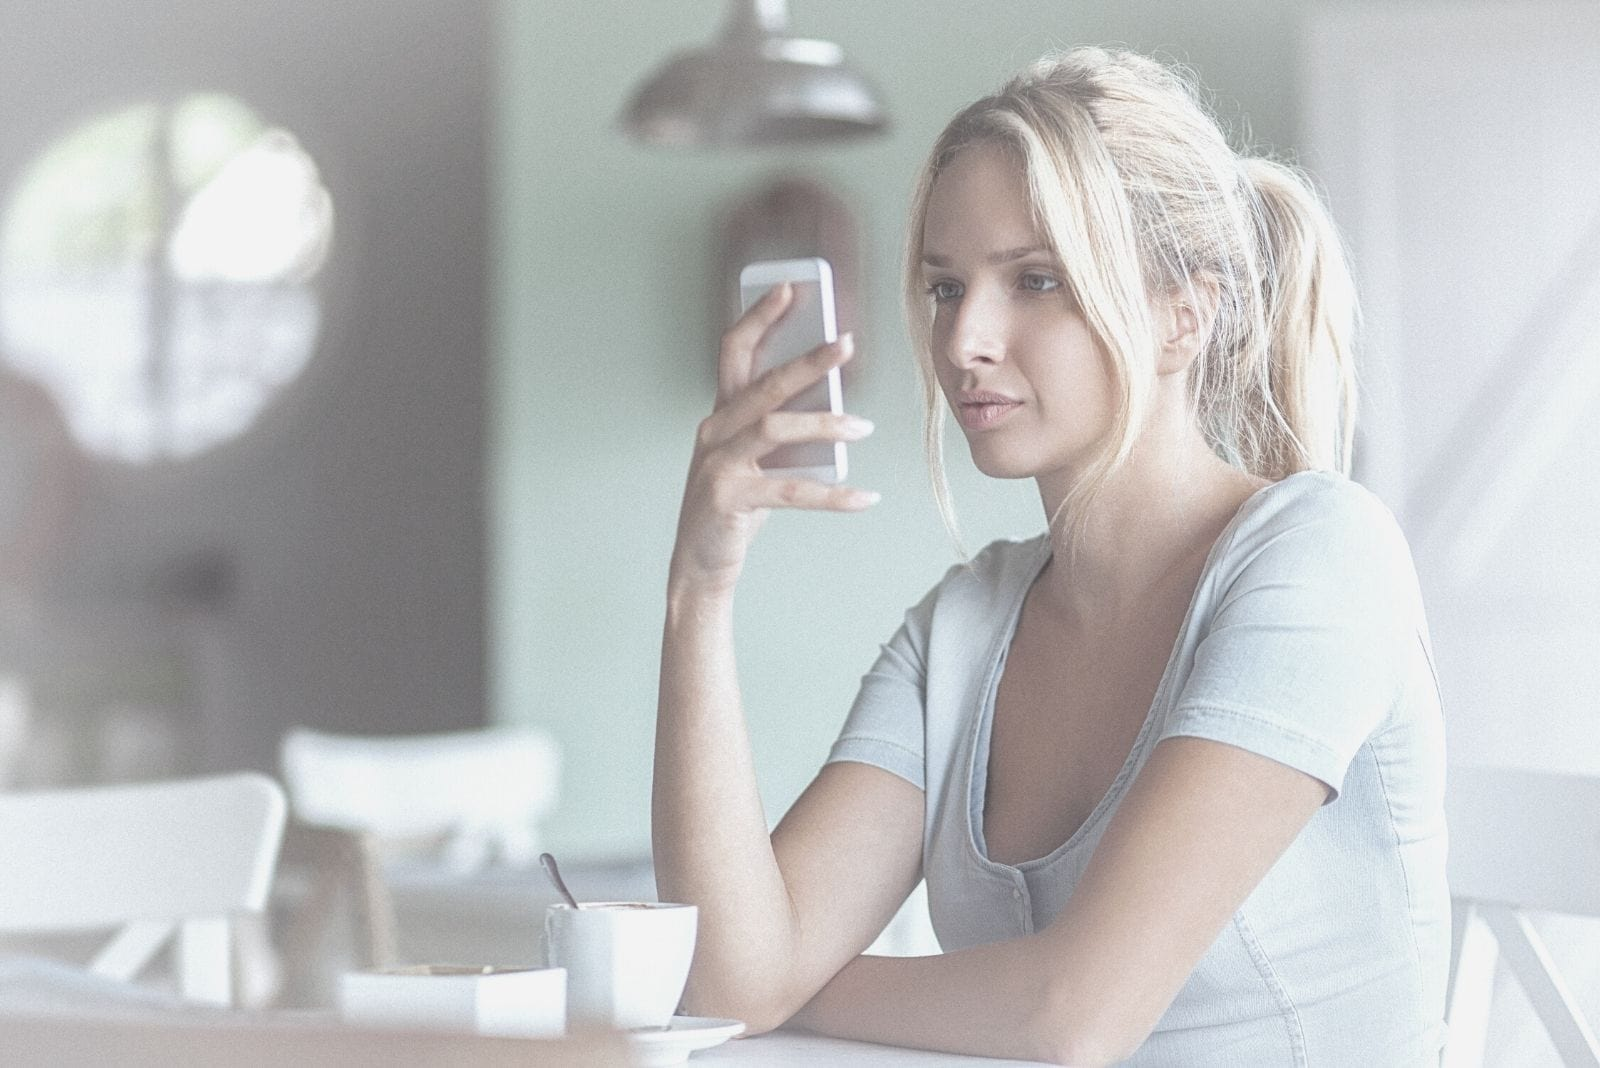 young woman texting pensively sitting inside a cafe